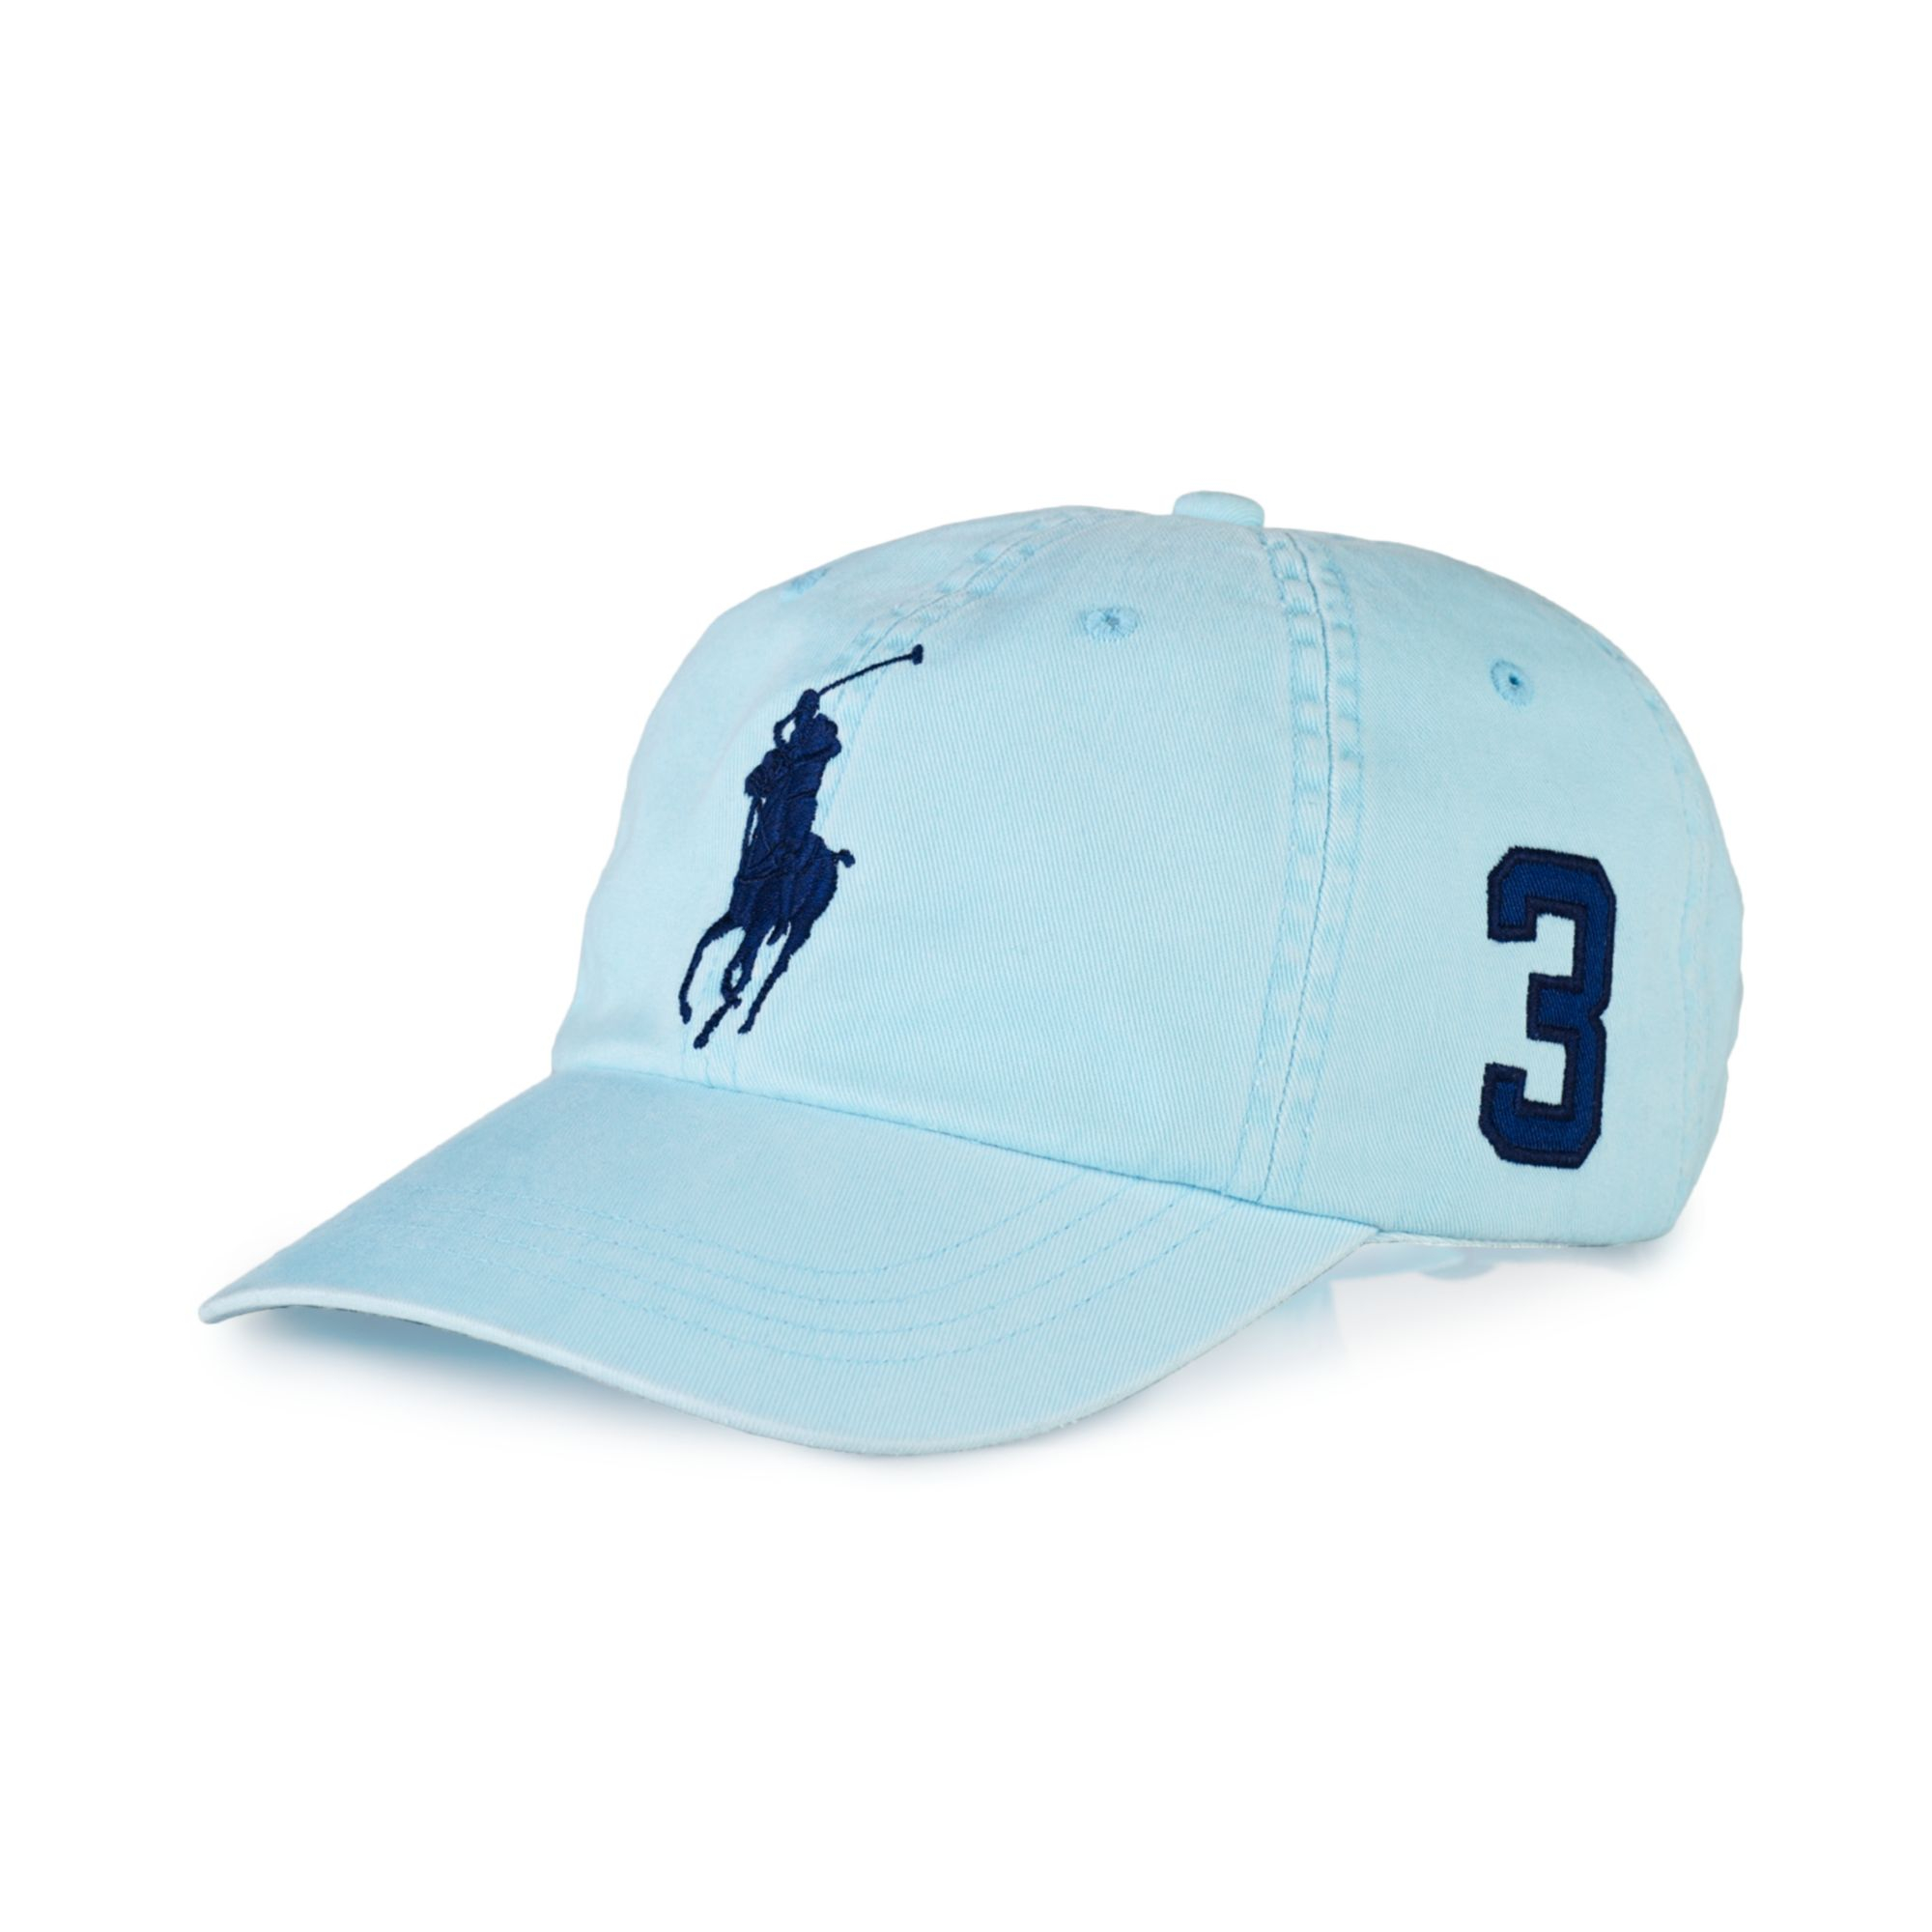 d3a02b6dda2 Lyst - Ralph Lauren Polo Classic Chino Sports Cap in Blue for Men